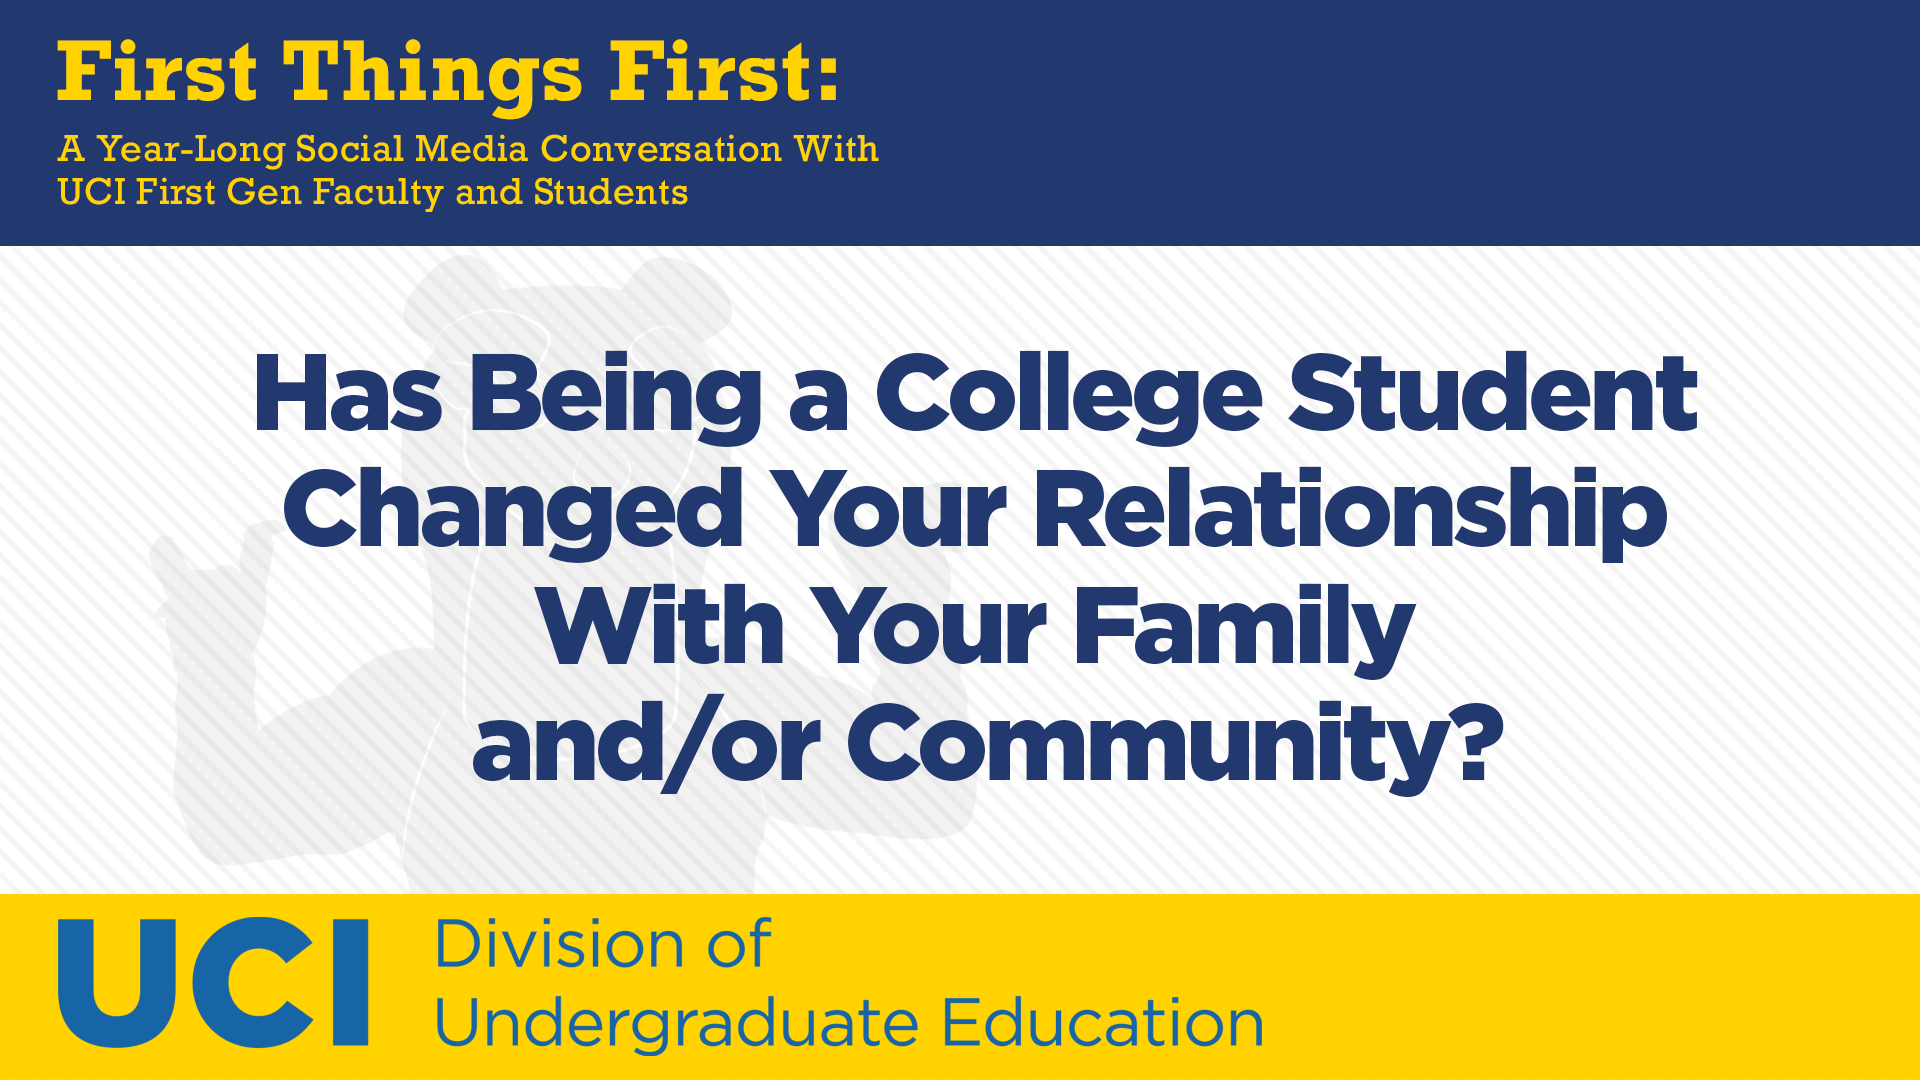 Has Being a College Student Changed Your Relationship With Your Family and/or Community?